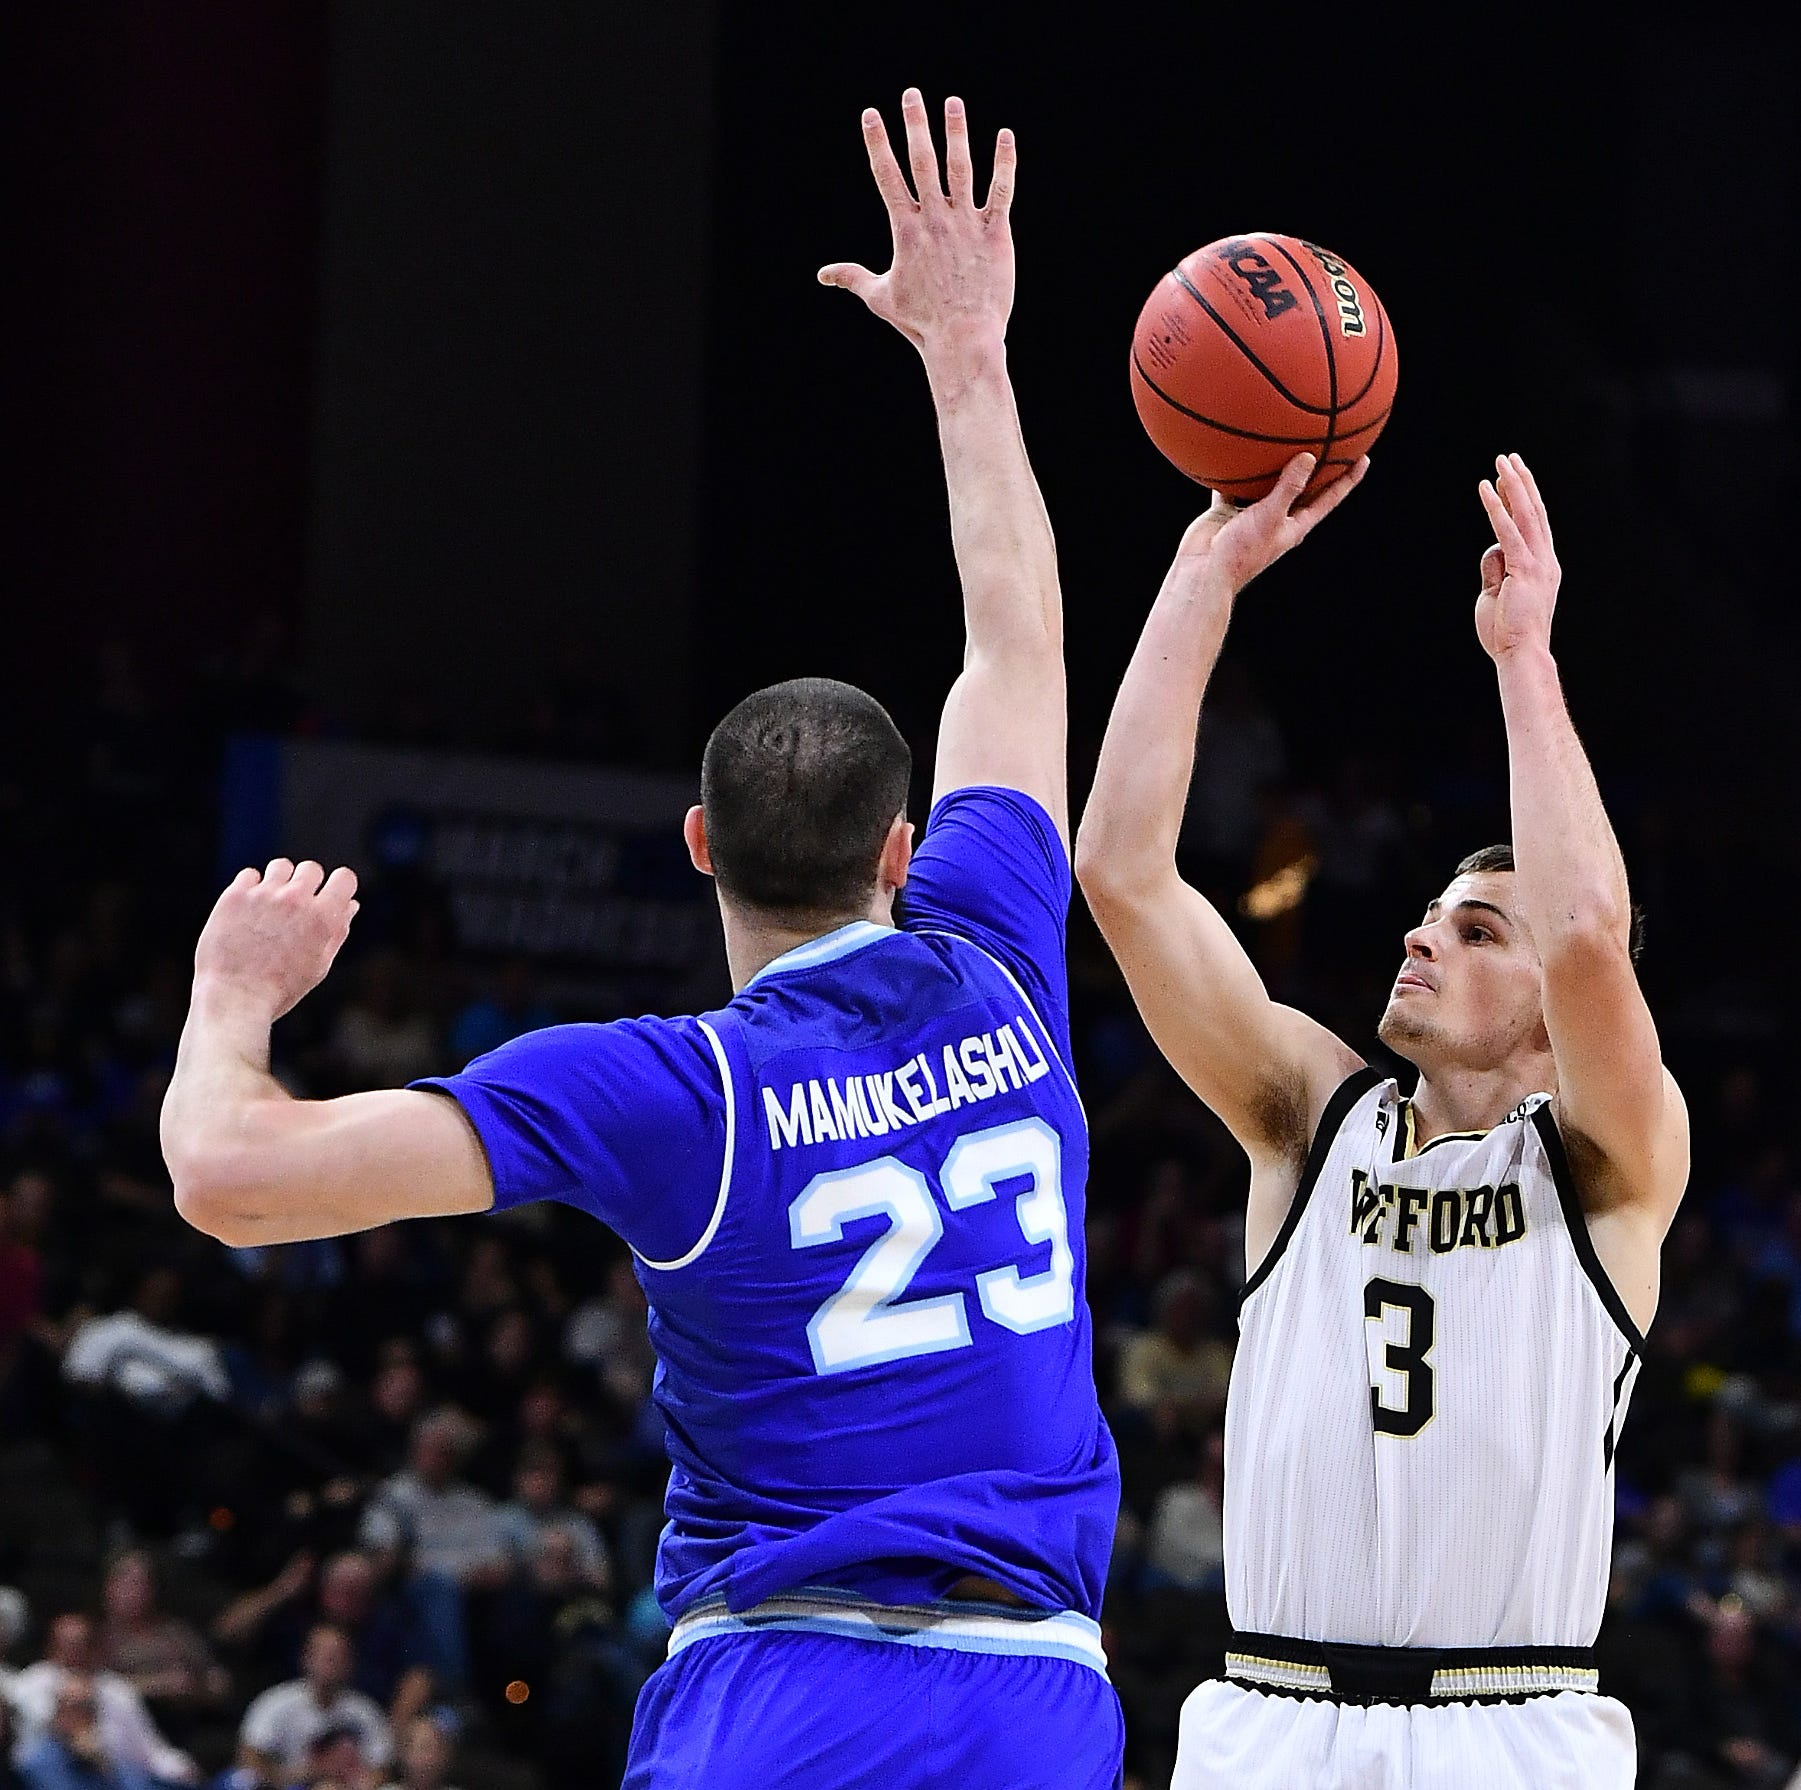 Get to know the Wofford Terriers, UK basketball's next NCAA tourney opponent